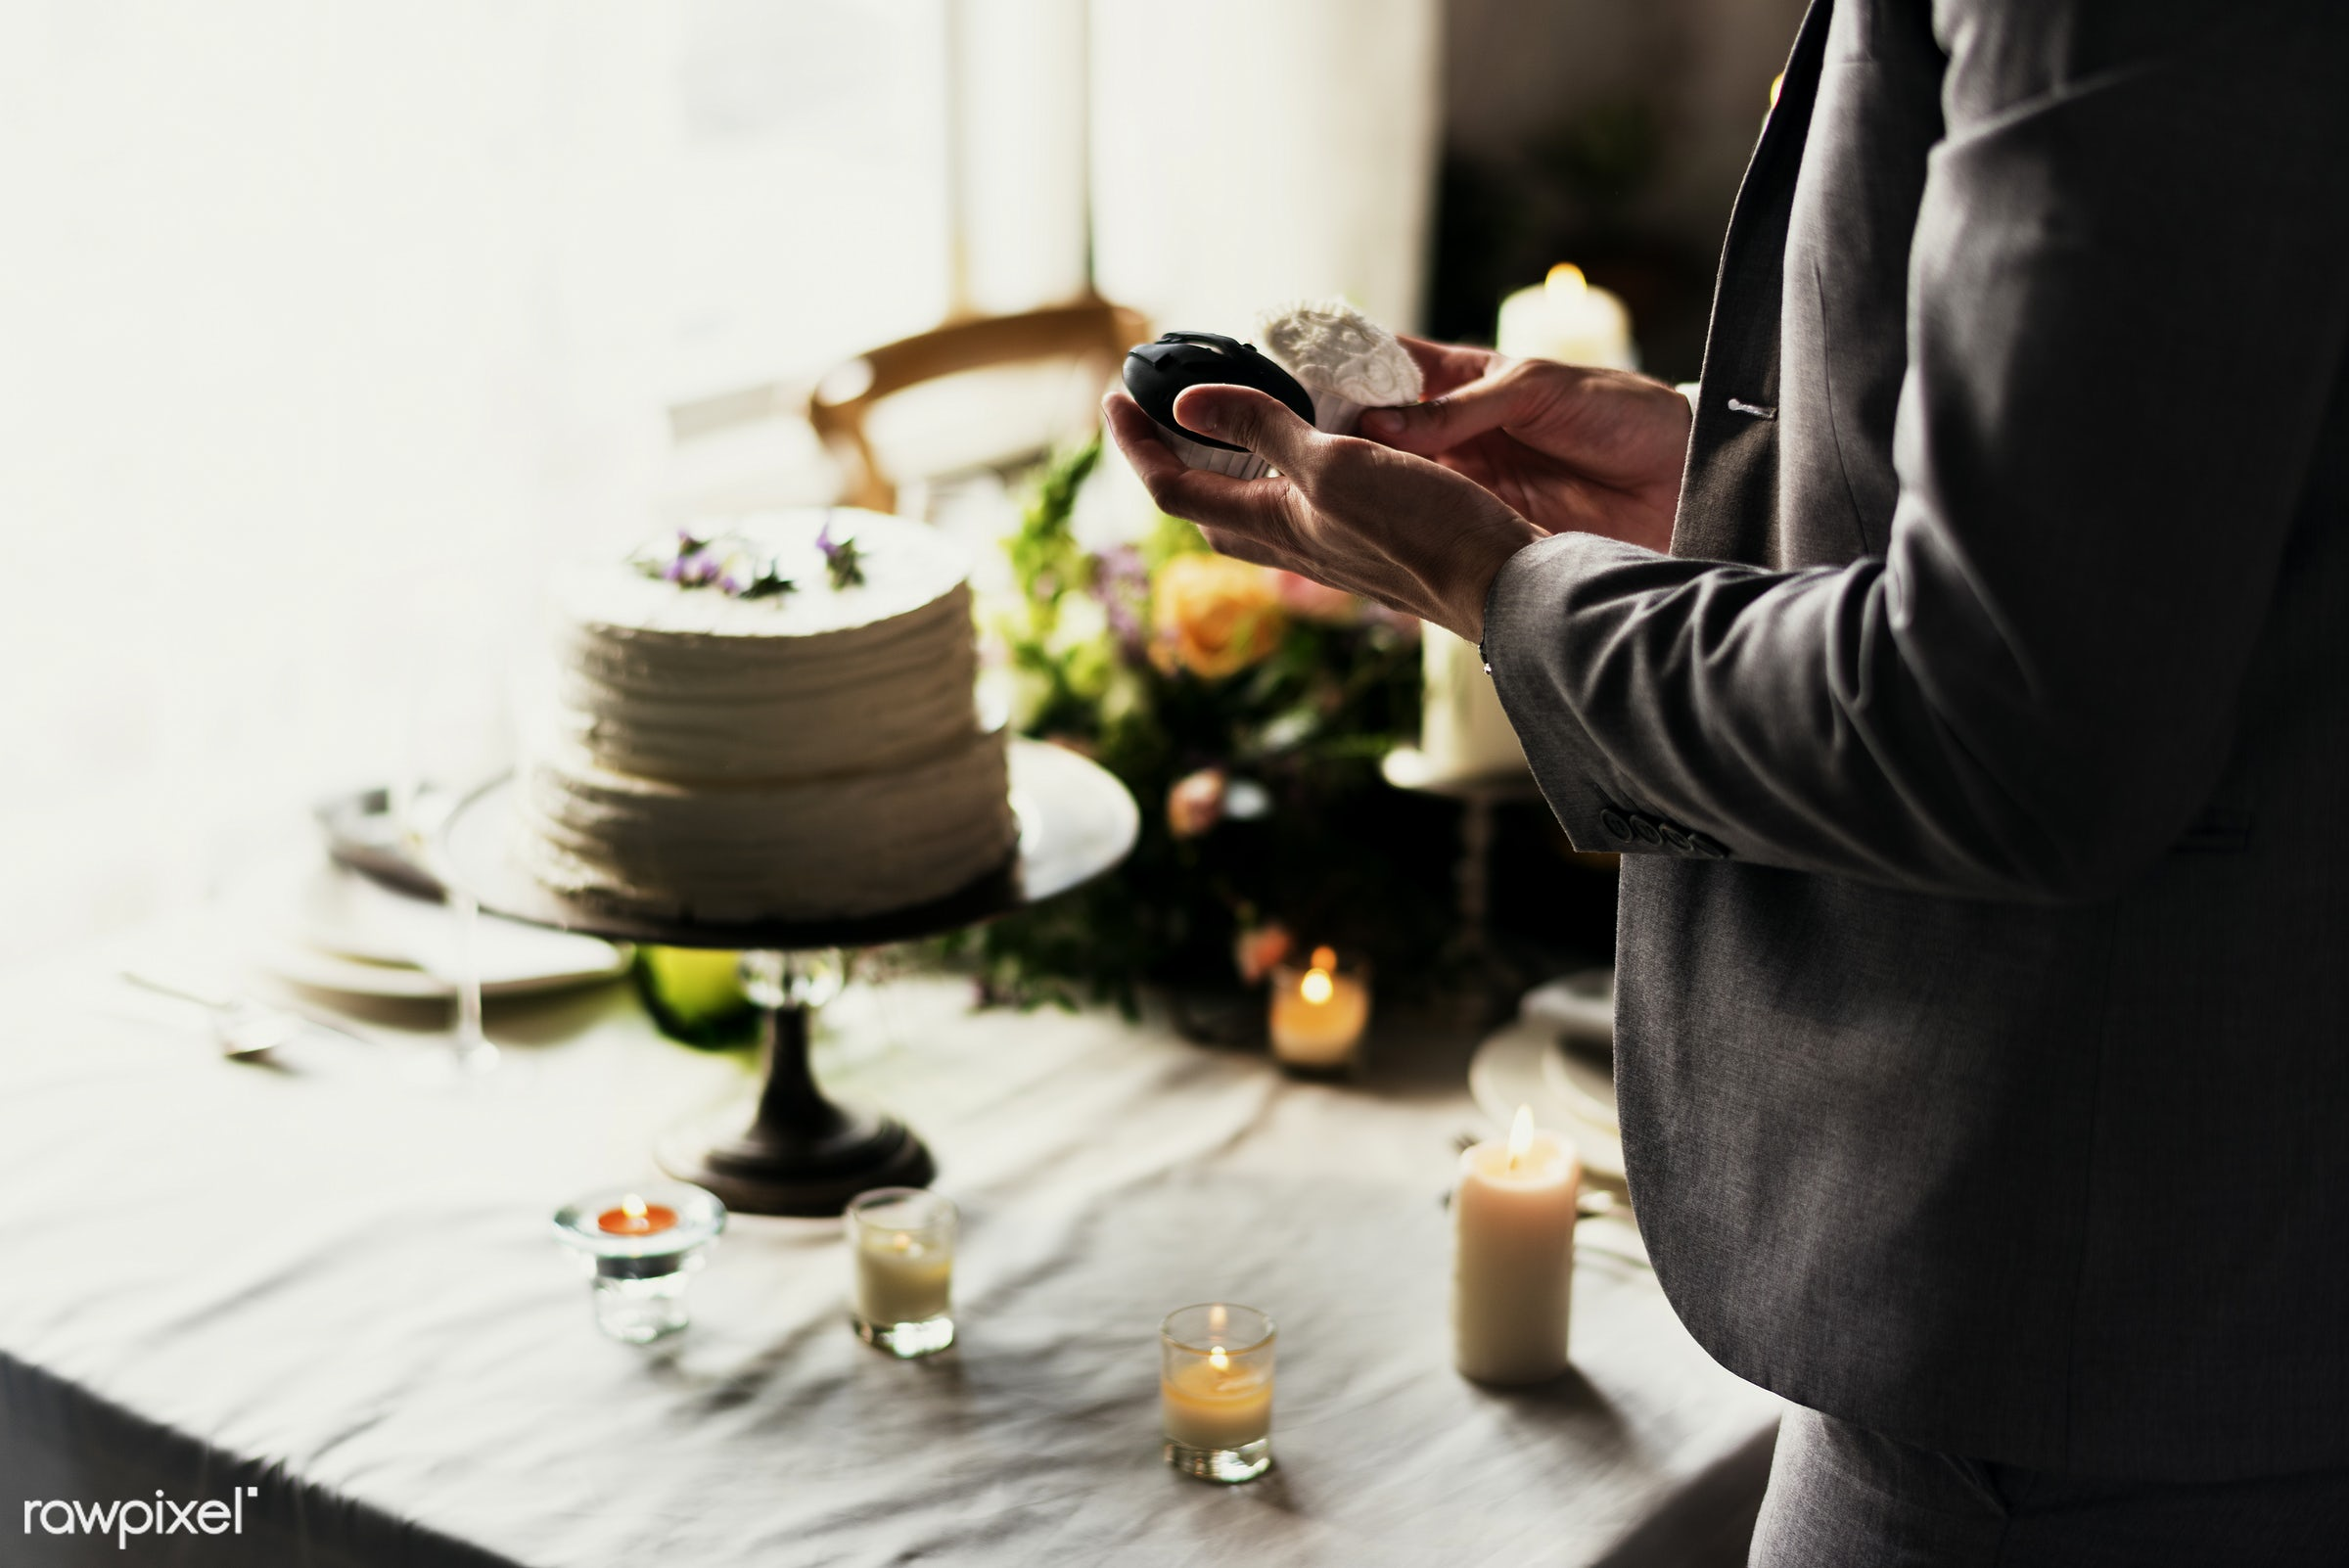 dish, person, holding, restaurant, party, people, candle, organization, hands, seat, event, men, man, flower, dessert, cake...